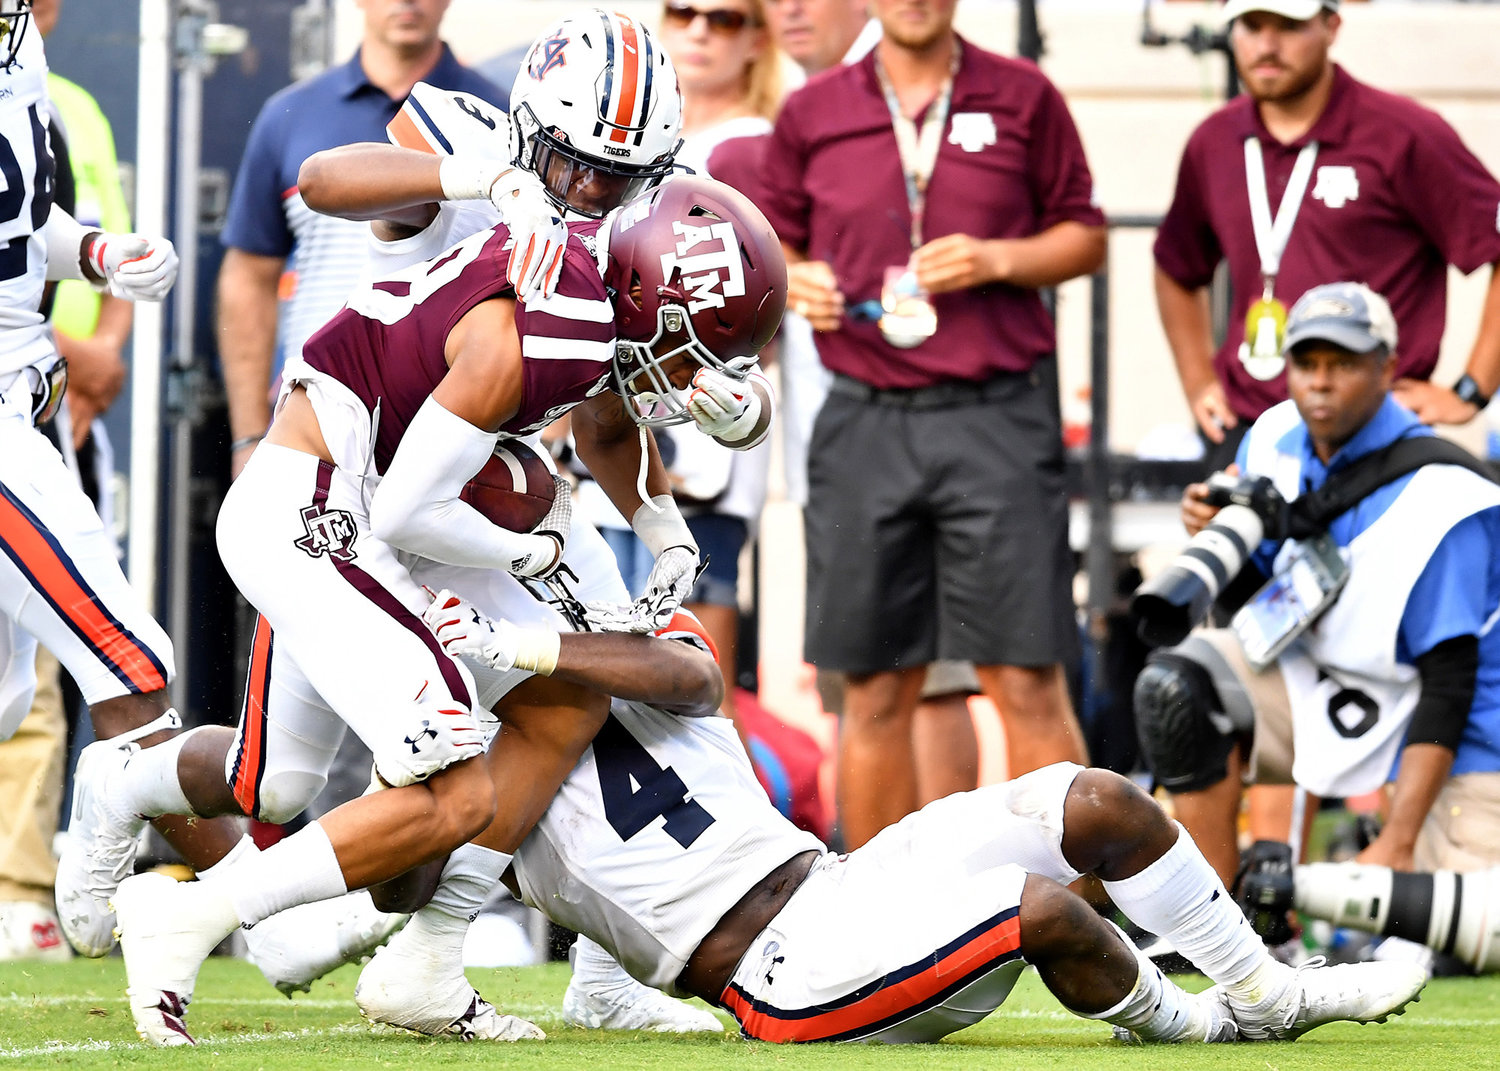 Auburn Tigers defensive back Javaris Davis (13) causes a fumble during a Texas A&M Aggies kickoff return in the fourth quarter of an NCAA football game Saturday, Sept. 21, 2019, at Kyle Field in College Station Texas. Auburn wins 28-20.